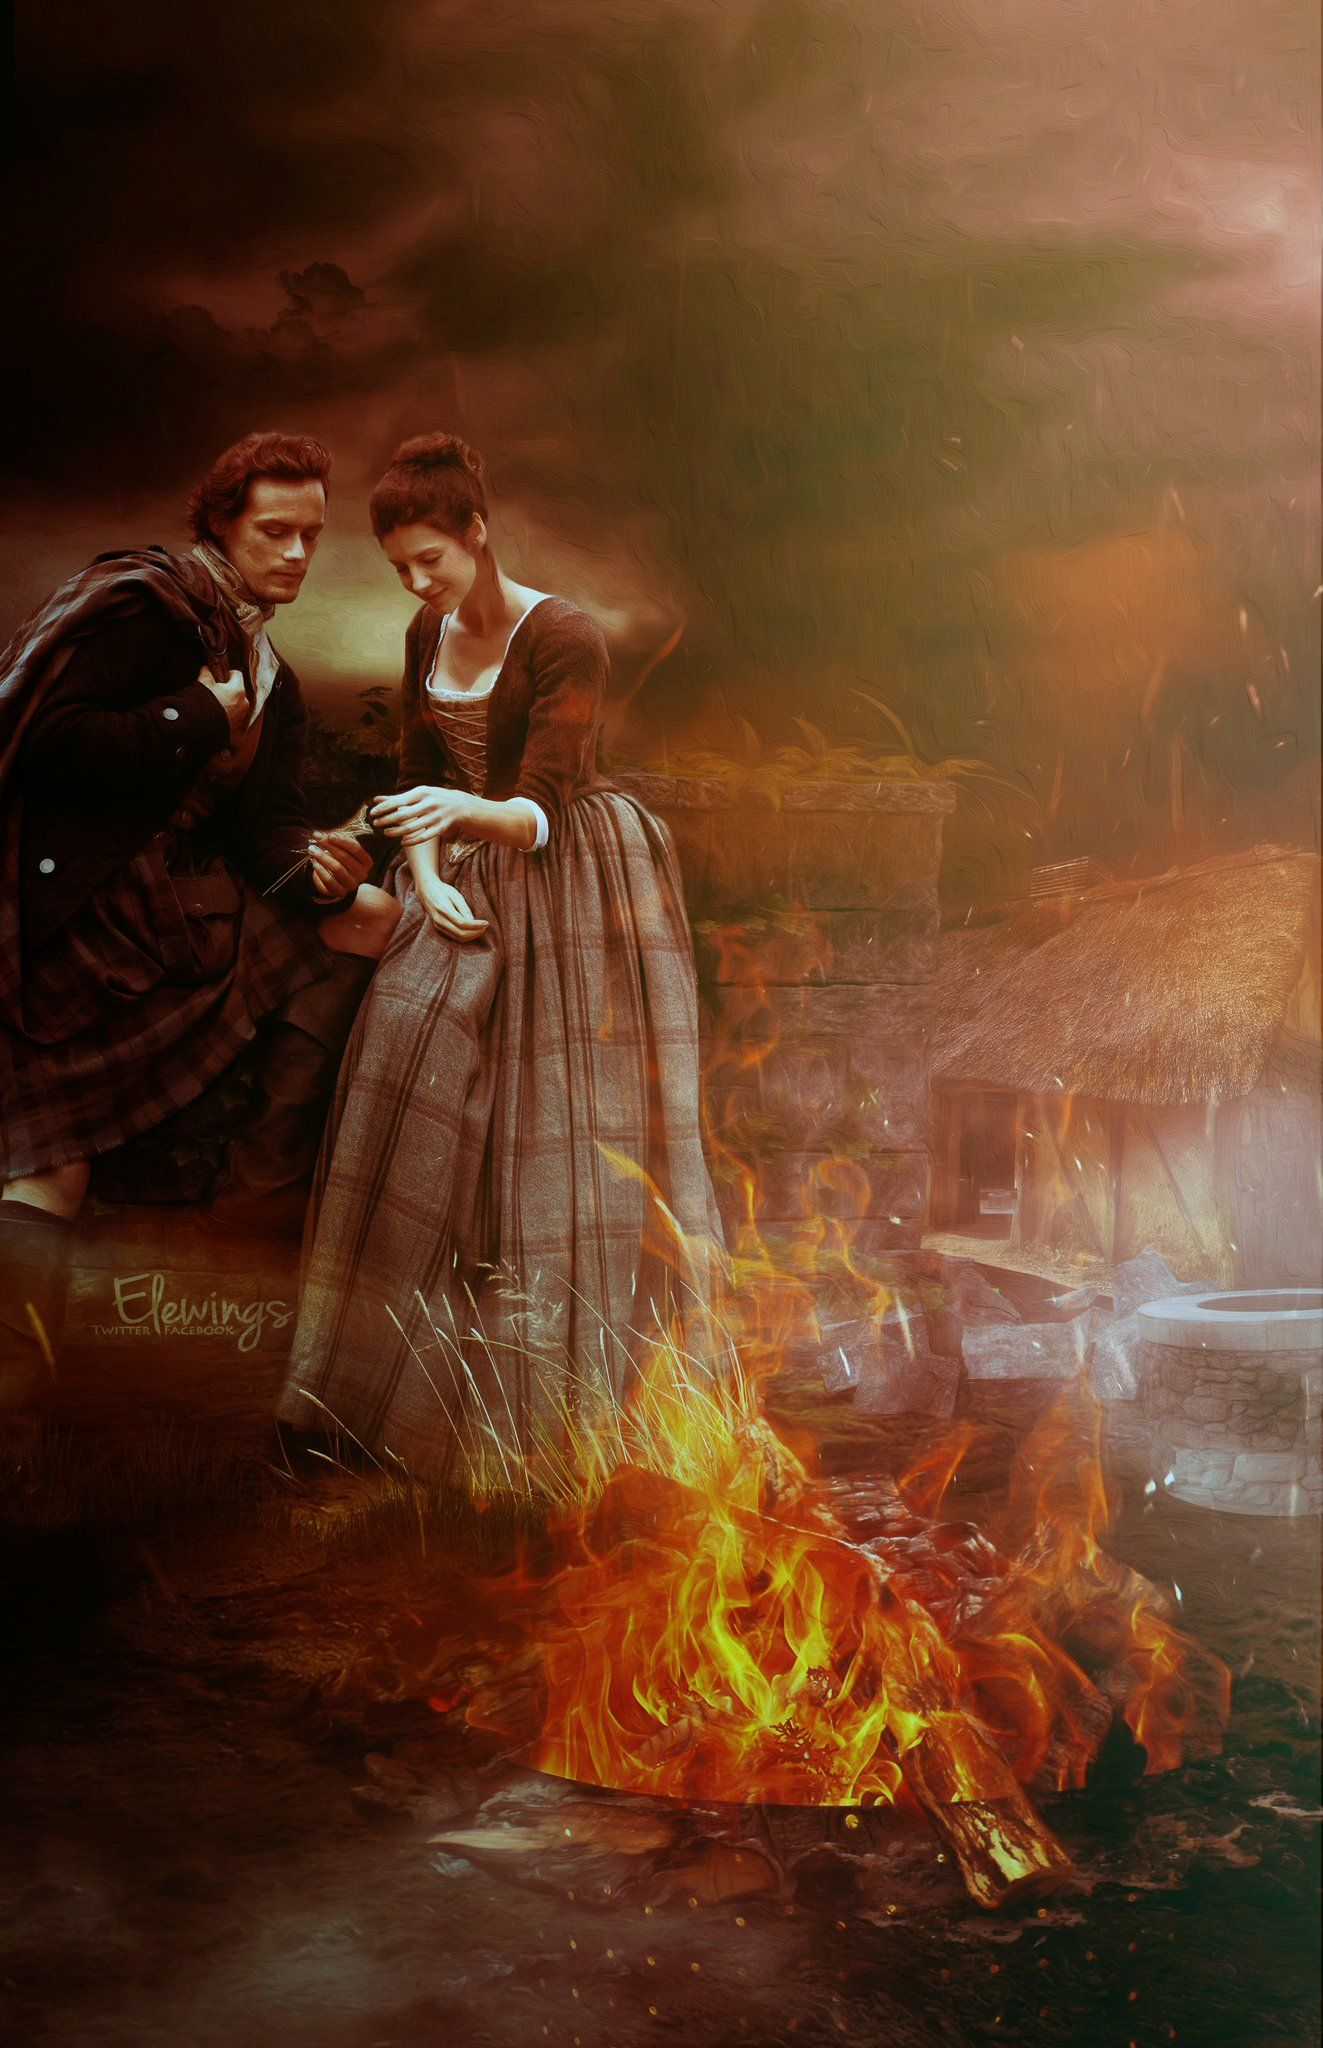 """EleWings Art on Twitter: """"@caitrionambalfe @SamHeughan  another Fanart. Outlander inspire me all the time. Love from France <3 https://t.co/bGY1yhRwYe"""""""